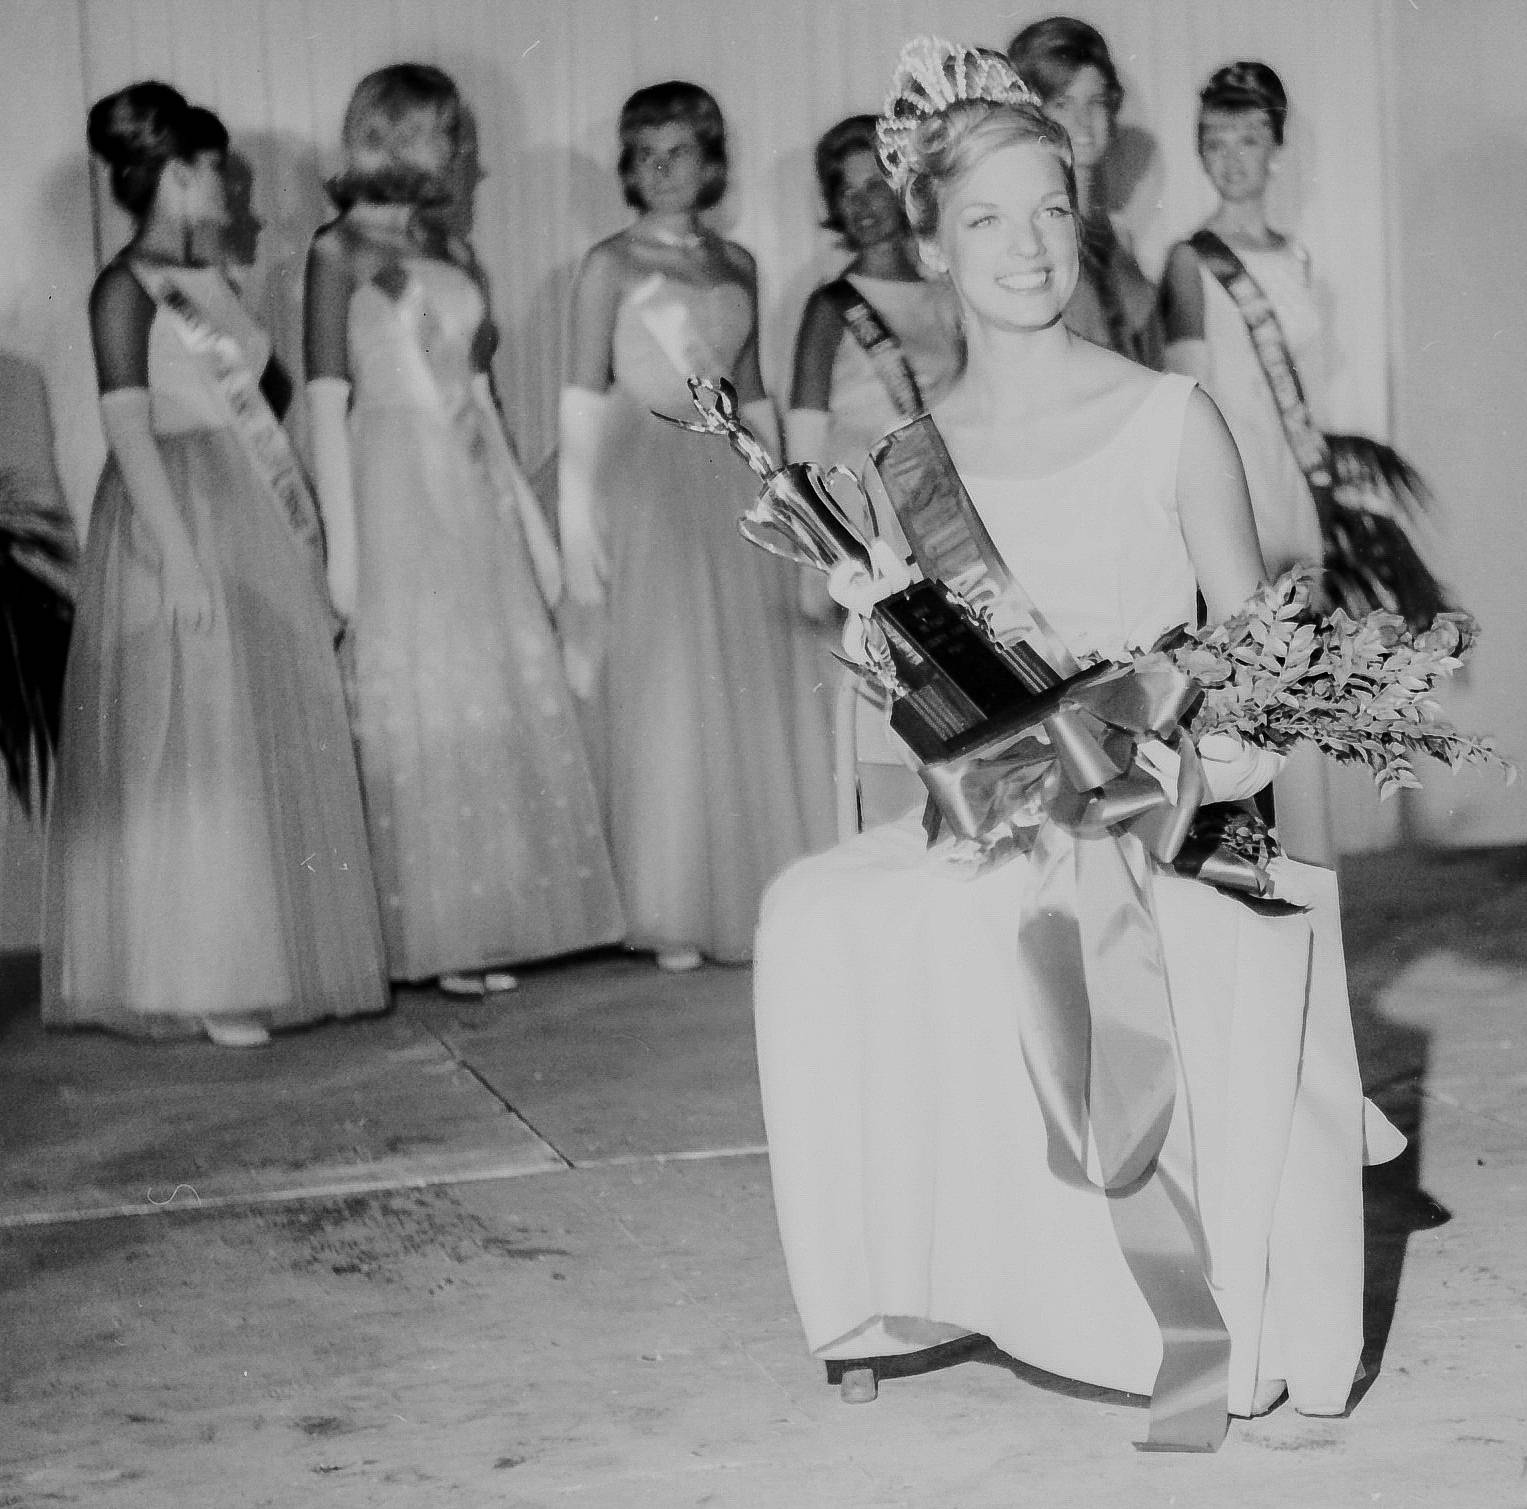 Ellyn Peska, 16 of Glen Ellyn is crowned Miss DuPage Country Fair queen 1965.